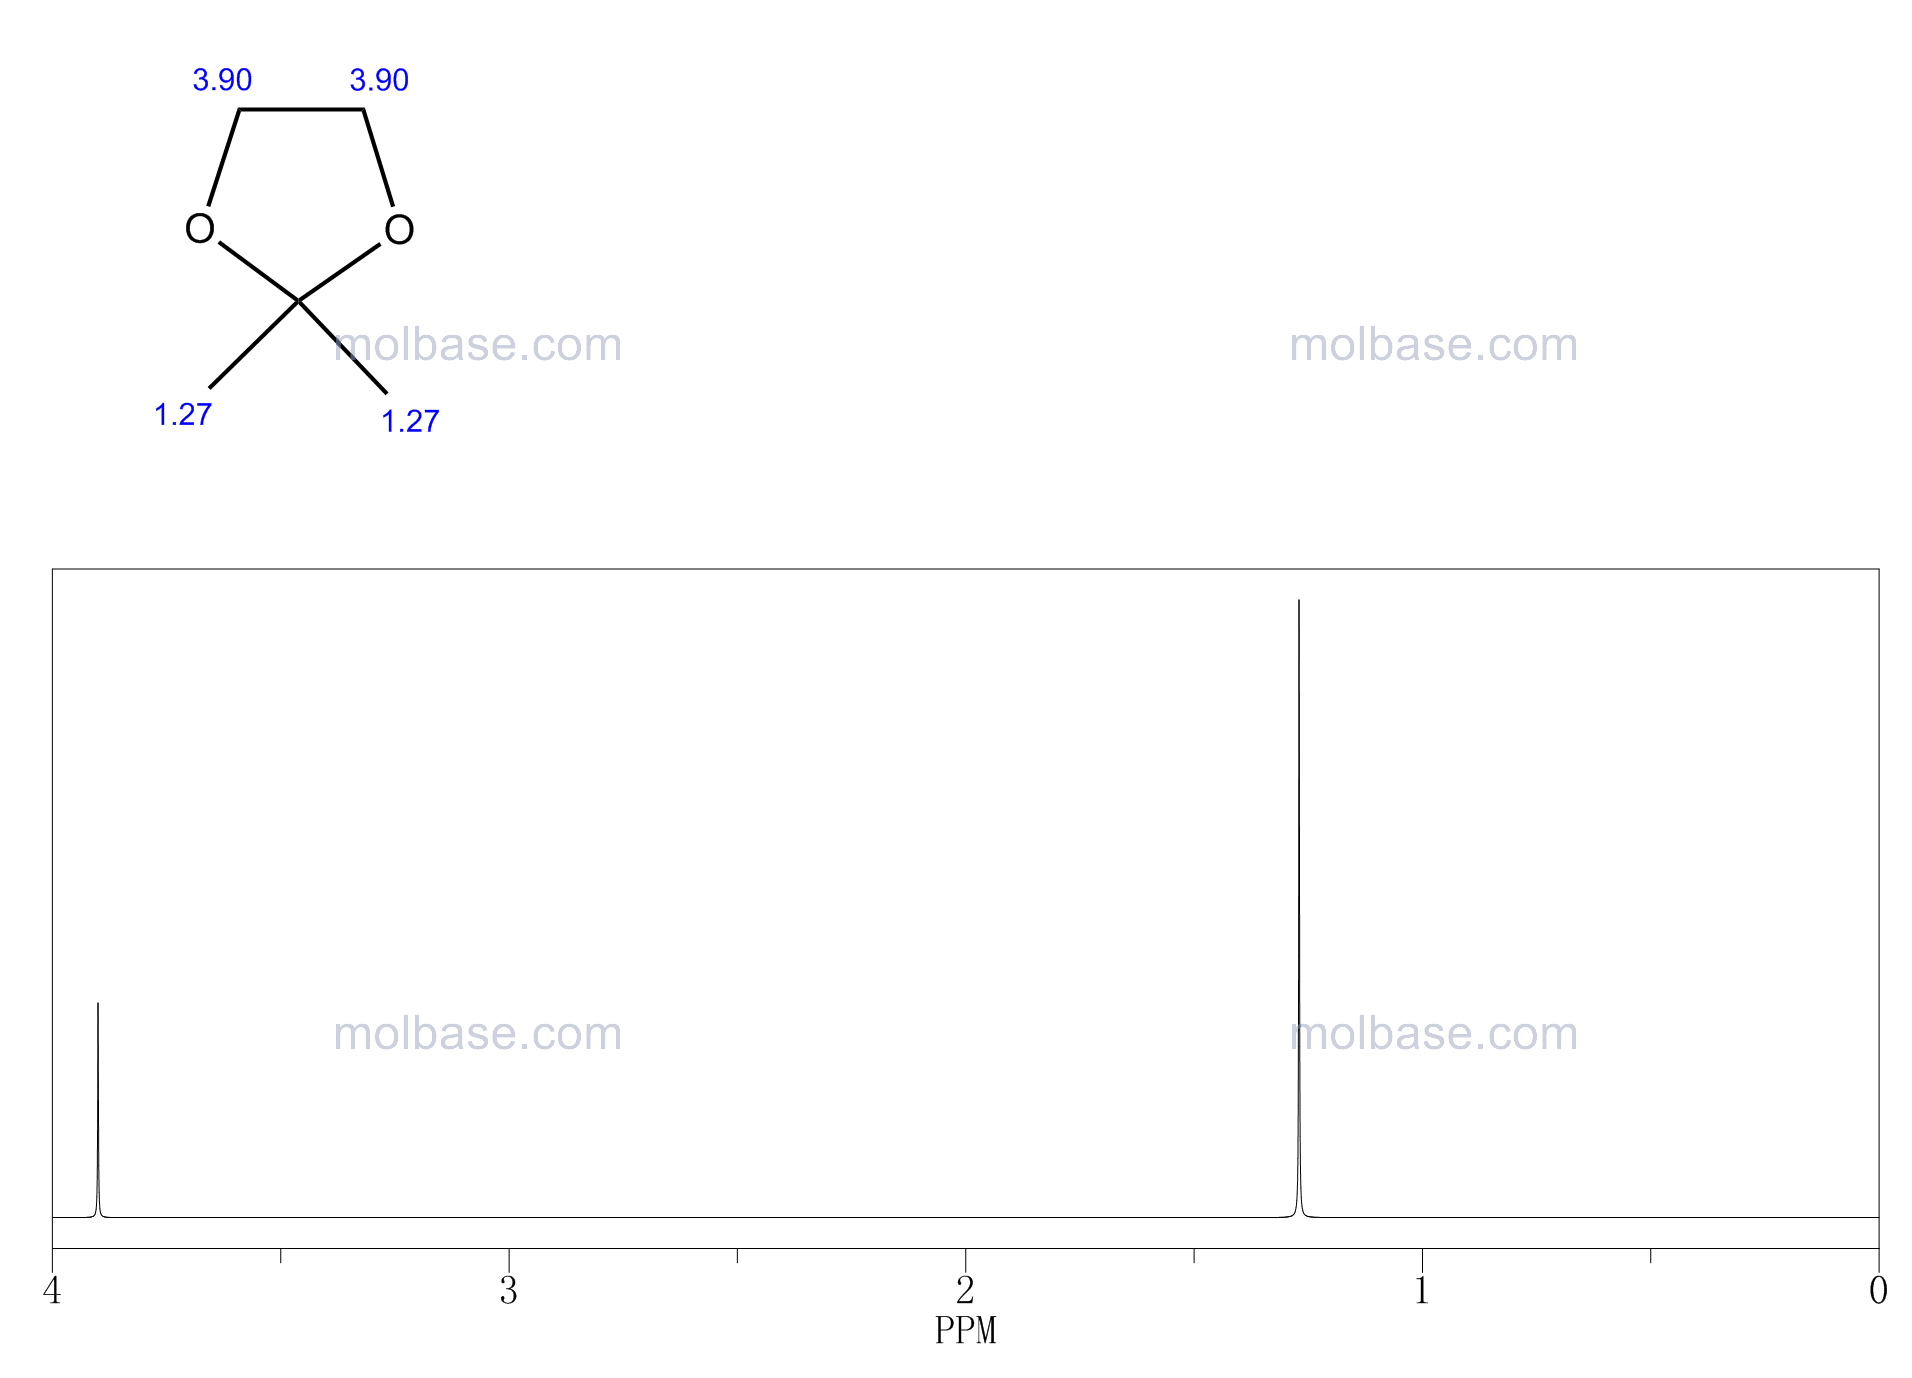 2,2-DIMETHYL-1,3-DIOXOLANE NMR spectra analysis, Chemical CAS NO. 2916-31-6 NMR spectral analysis, 2,2-DIMETHYL-1,3-DIOXOLANE C-NMR spectrum